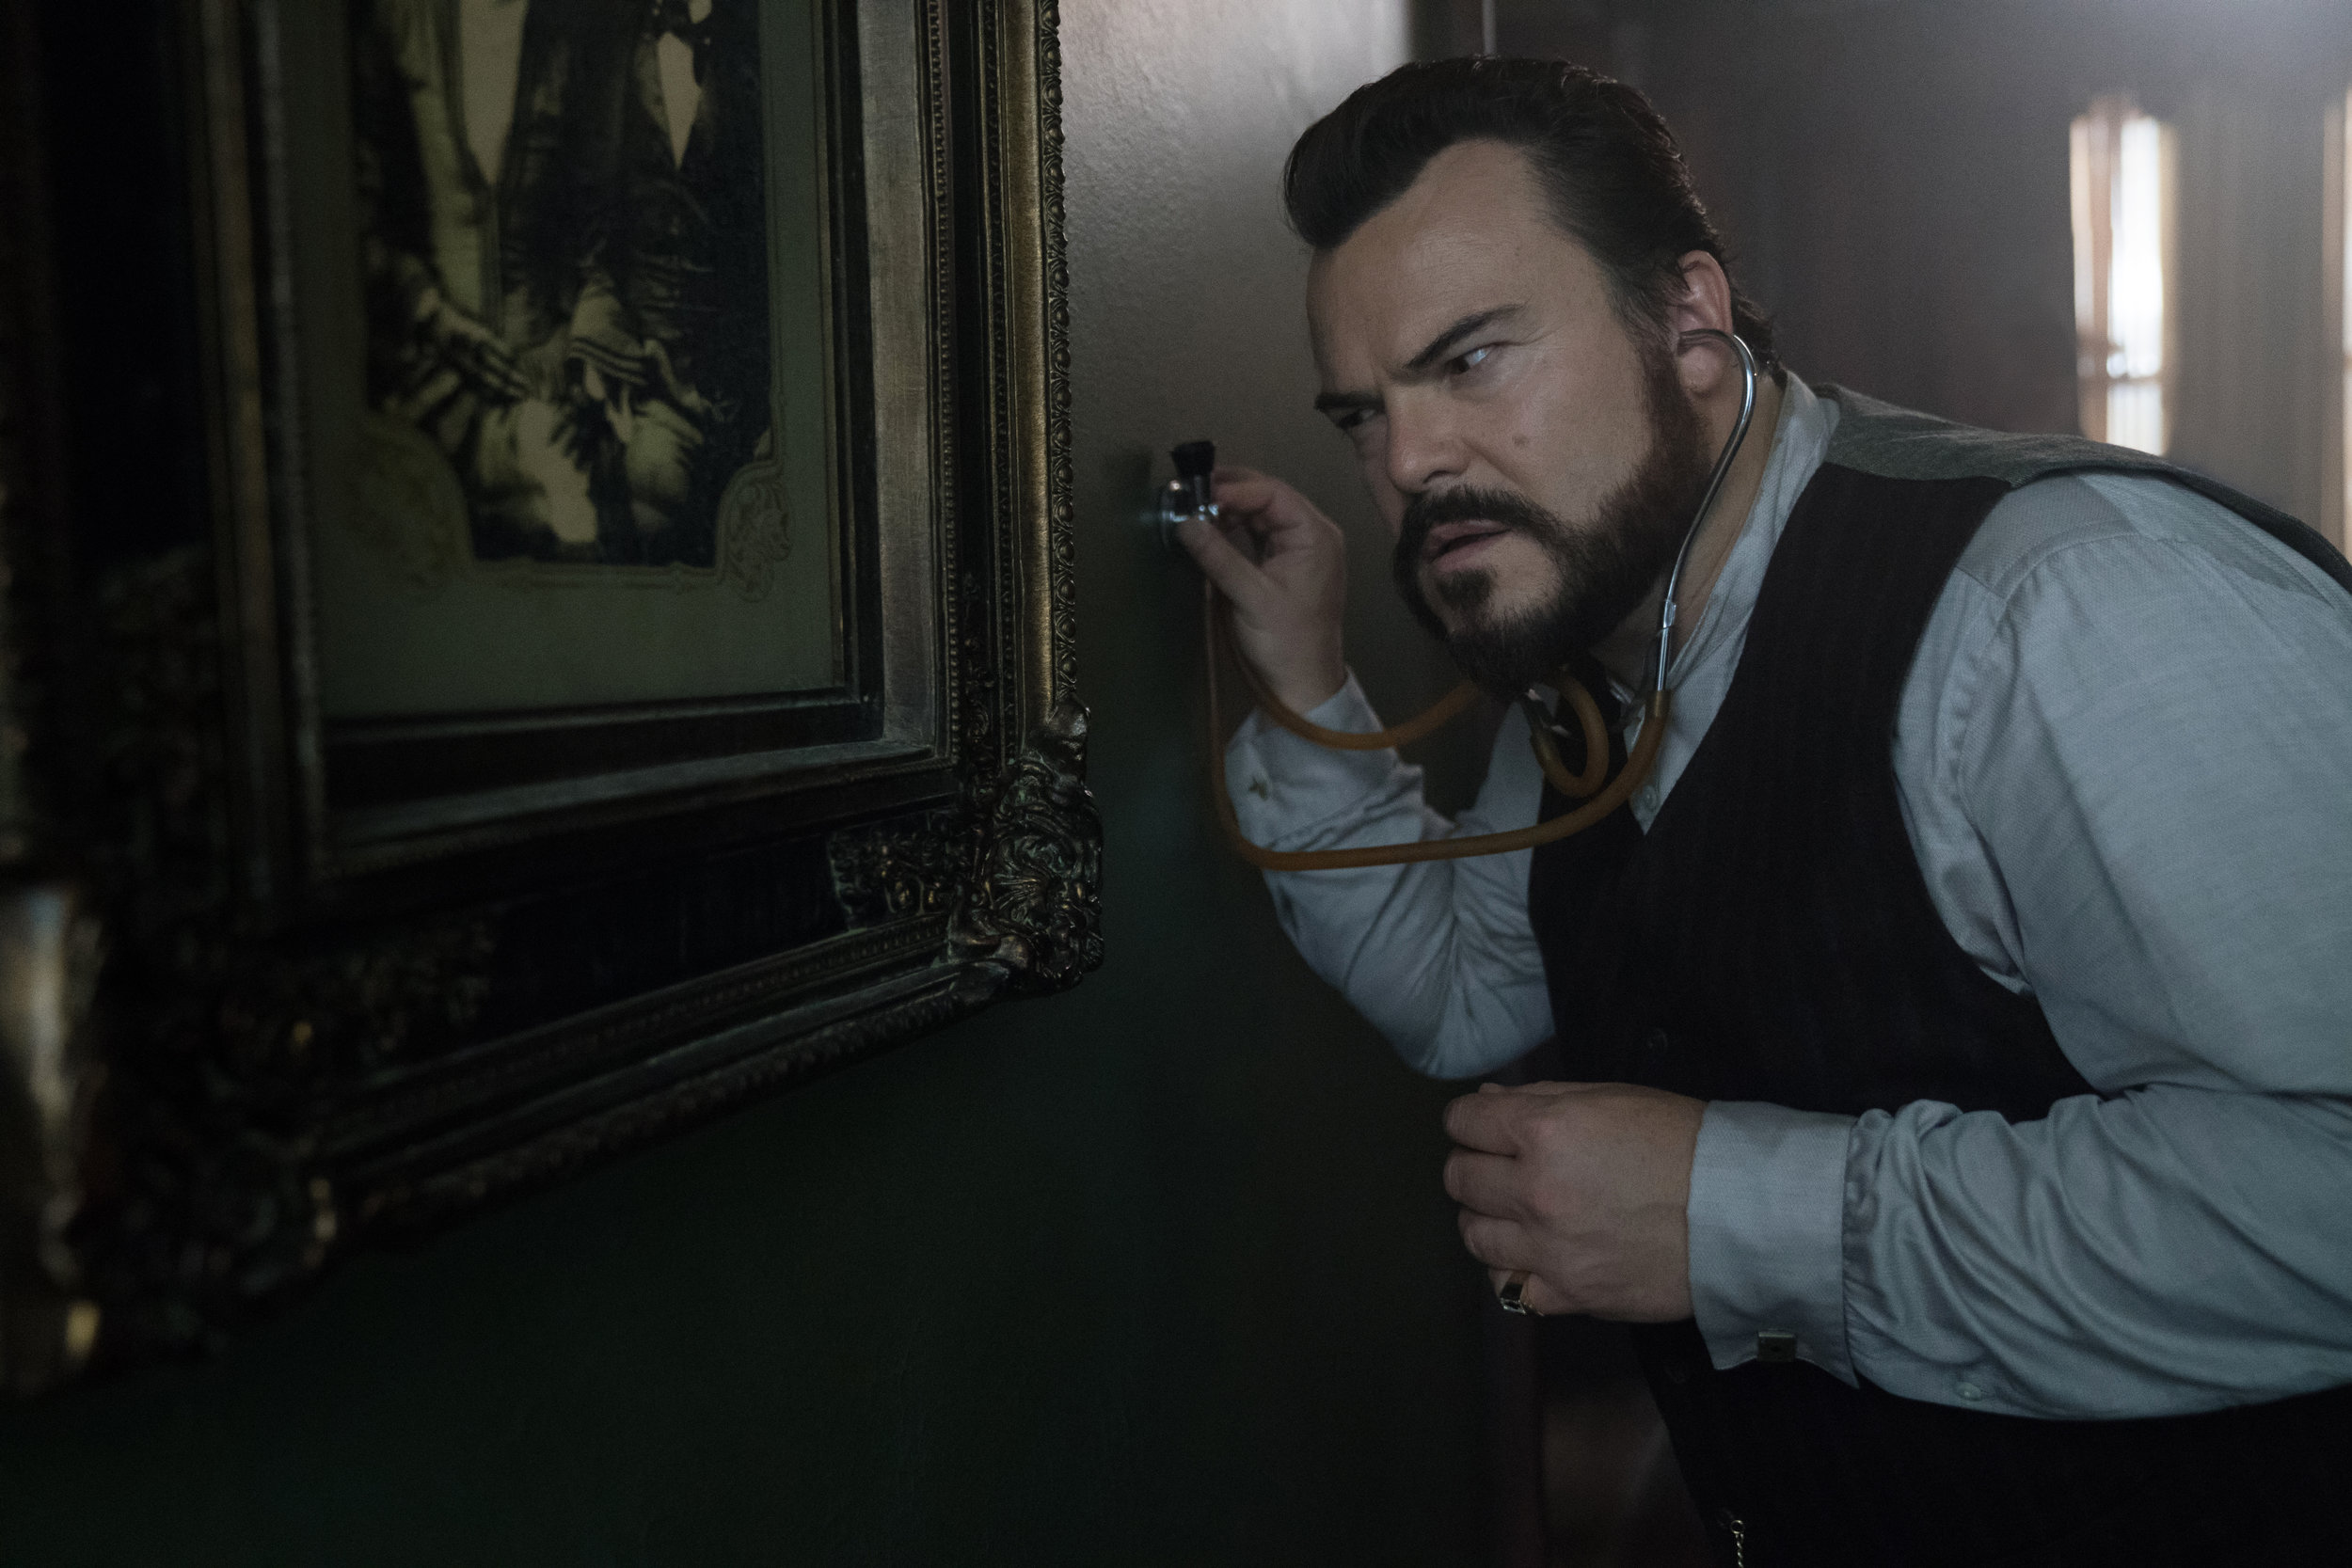 """Jonathan Bardevelt (Jack Black) searches for a telltale clock in the magic suspense tale """"The House With a Clock in Its Walls."""" (Photo courtesy Universal Pictures)"""